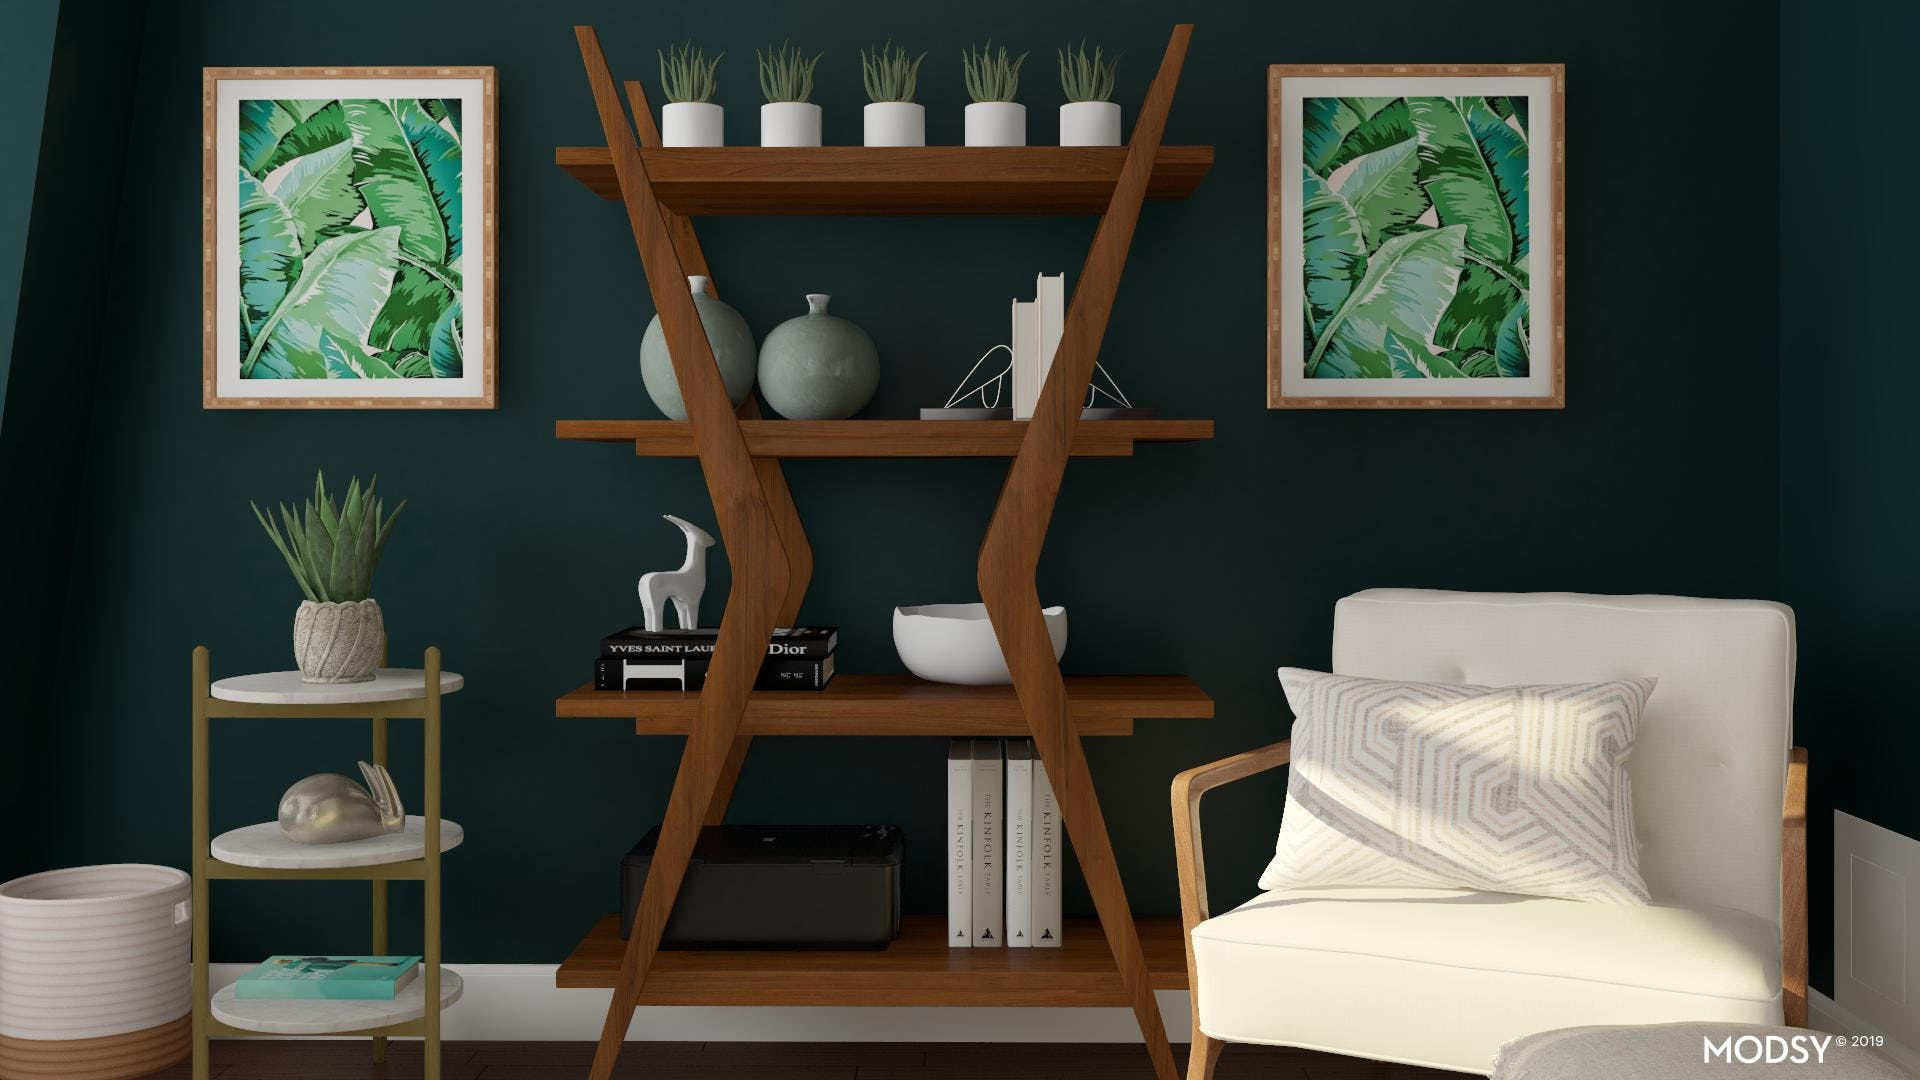 Styling With Plants - Mid Century Mod Bookcase